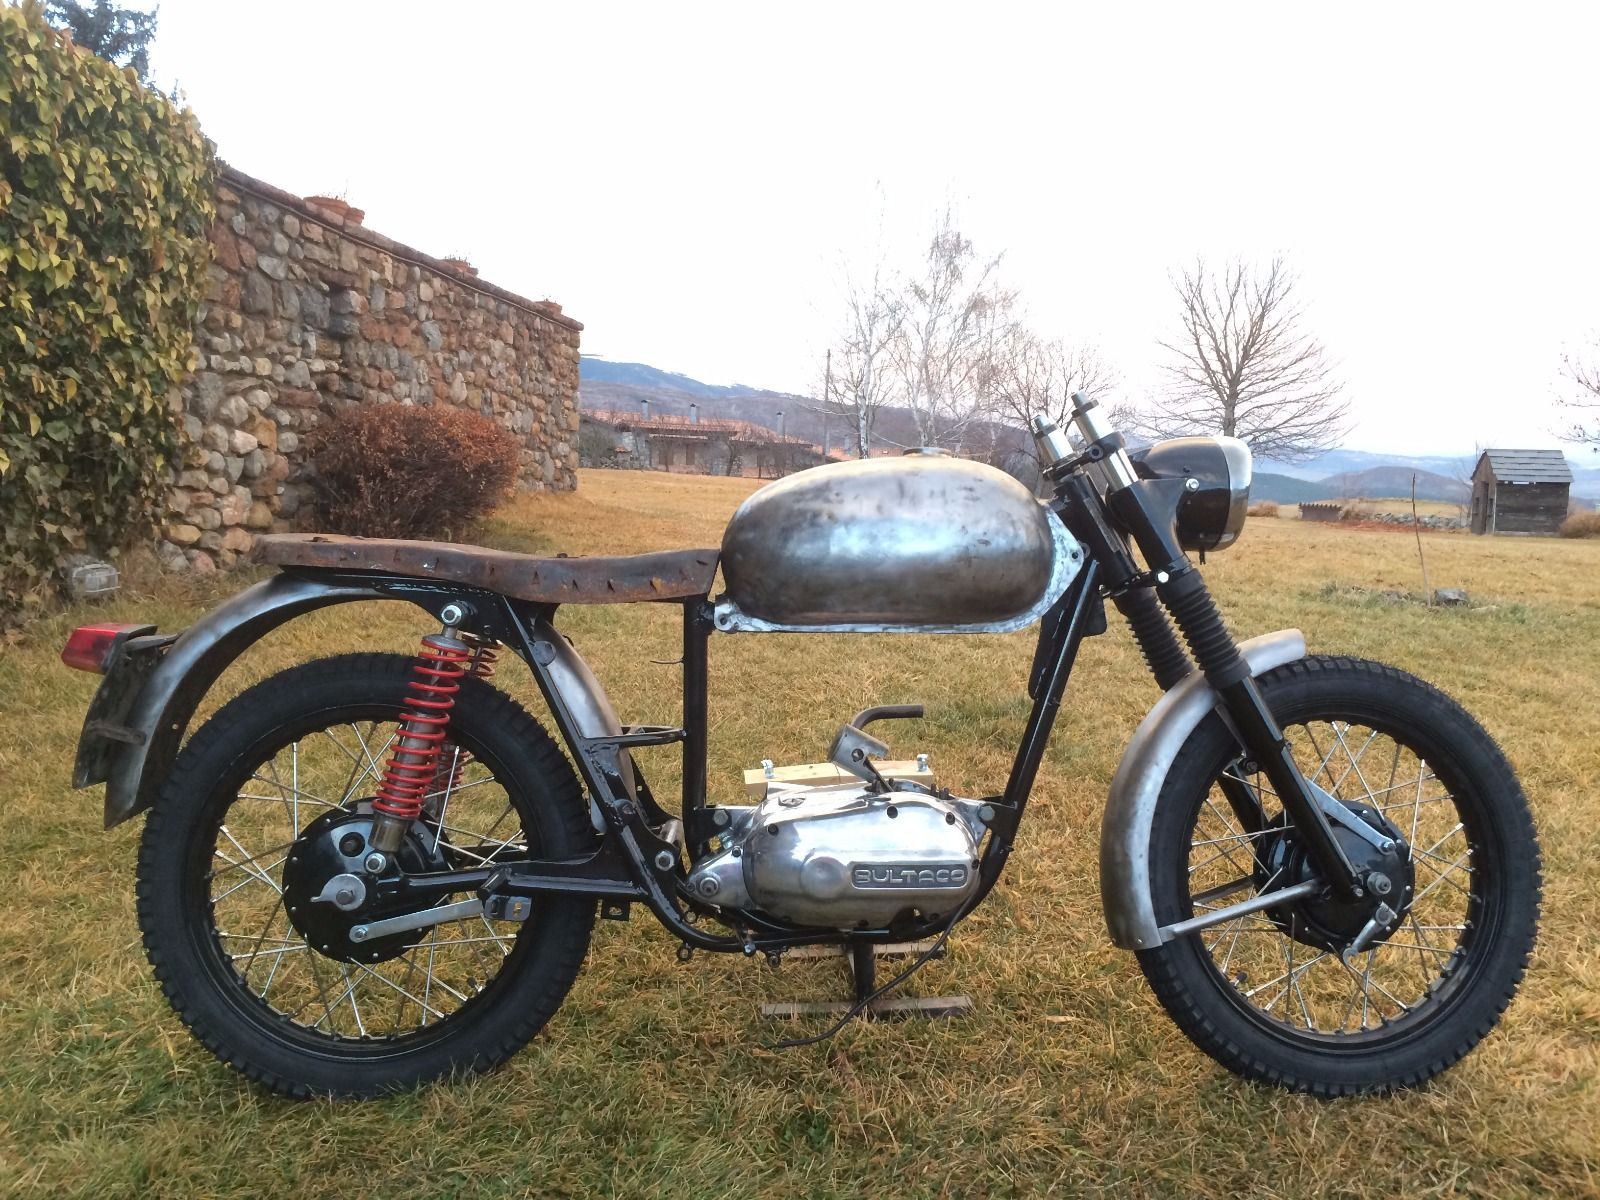 Garage Project Motorcycles | Goldwing, Cafe racer, Custom